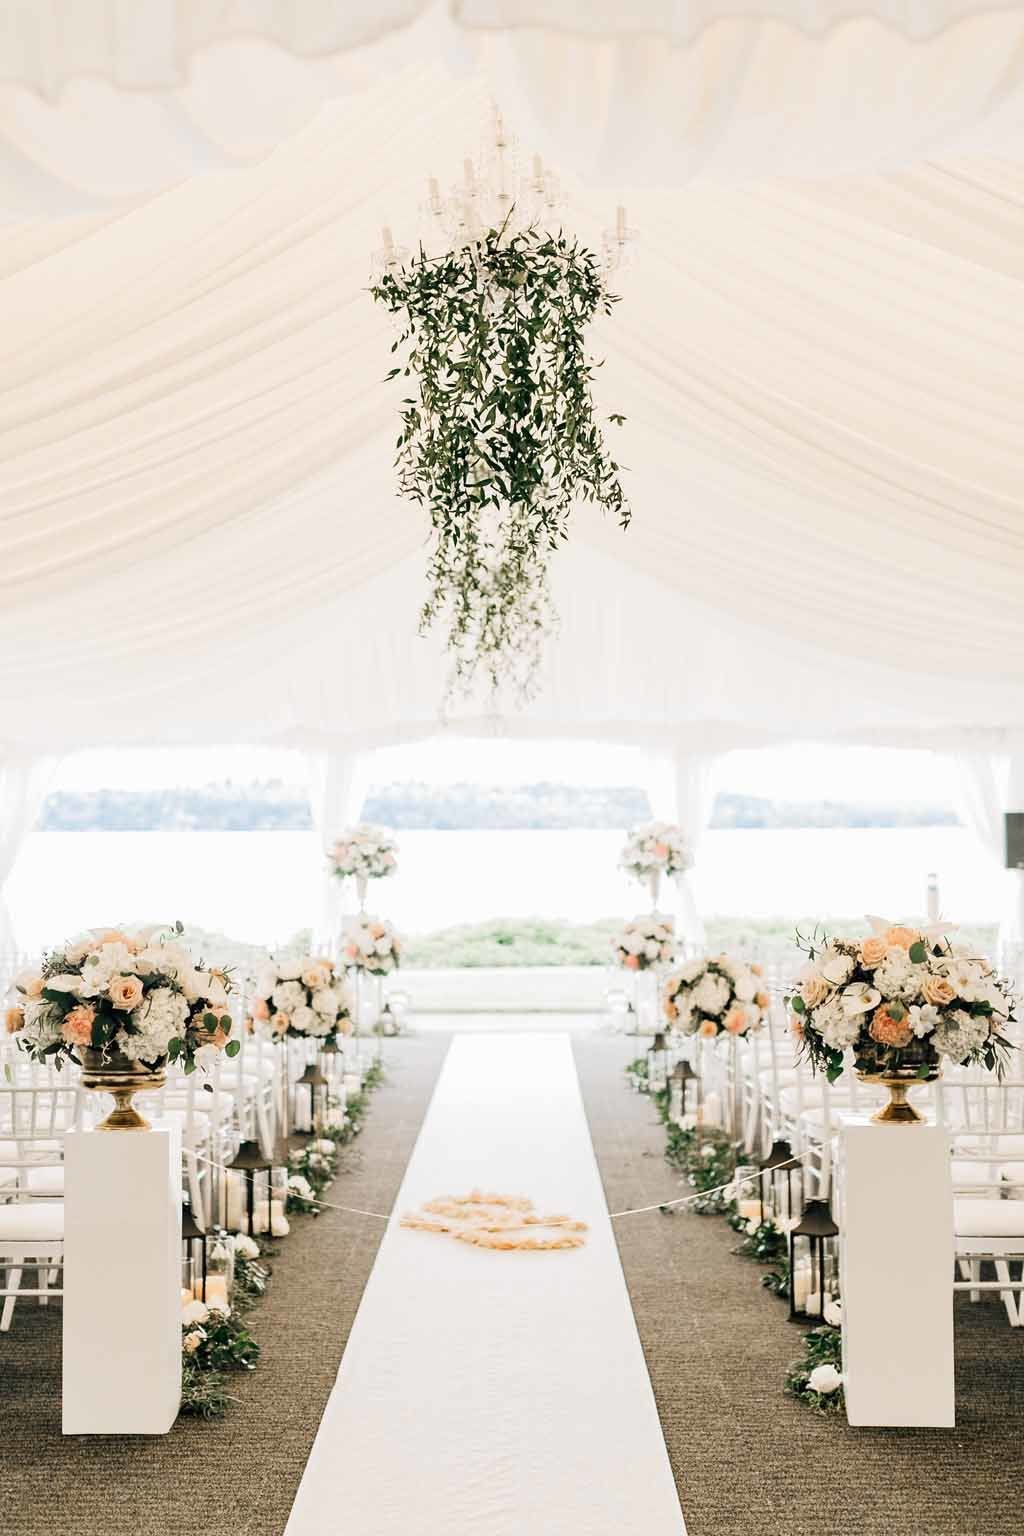 Beautiful Tent wedding in Seattle with tall floral lining the aisle and greenery covering the chandeliers at Woodmark Hotel.